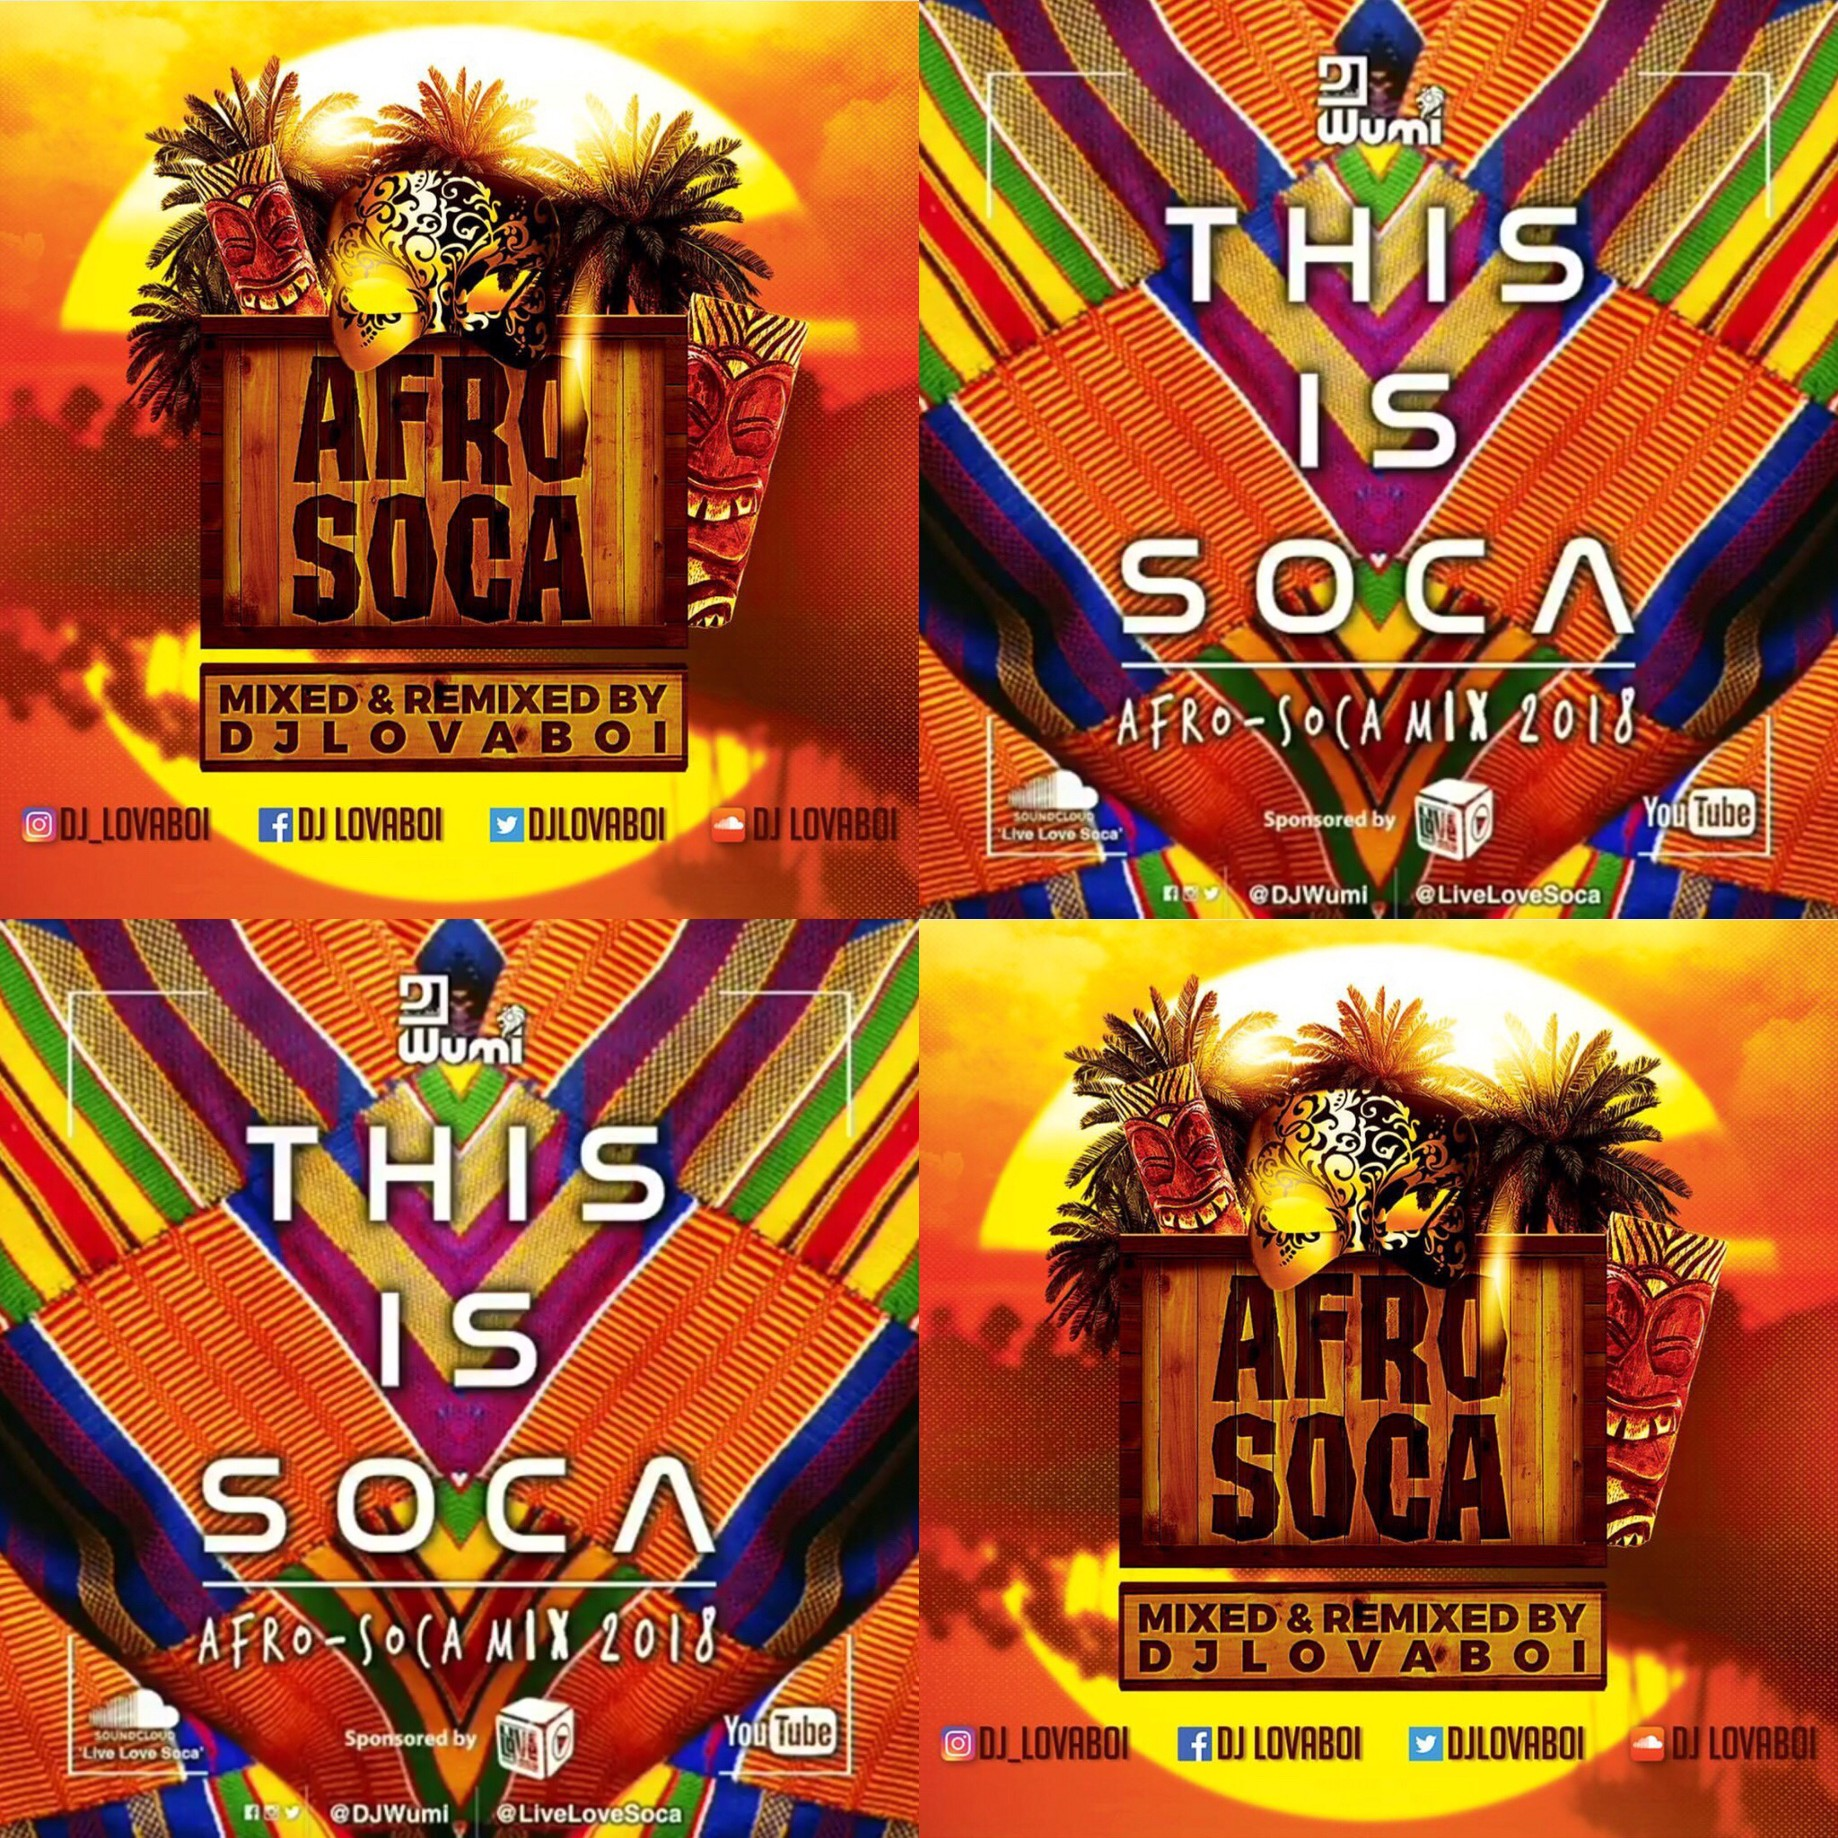 Catch Up On Your Soca: Afrobeat, Soca, And Afrosoca — Know The